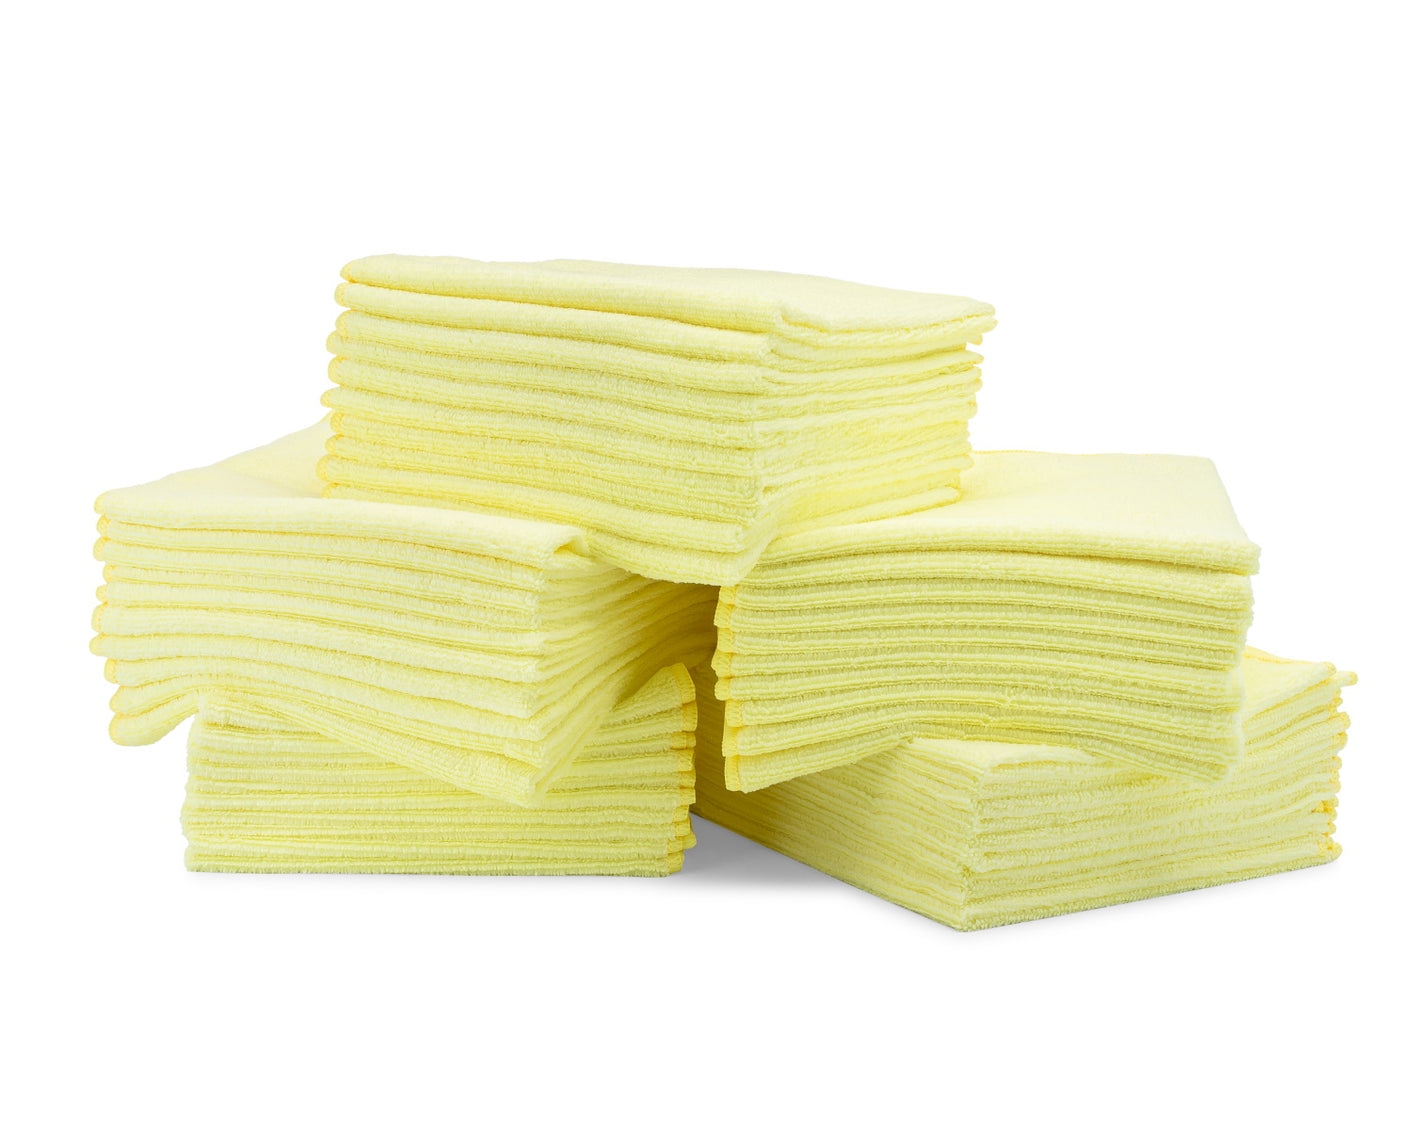 16 x 16 Microfiber Towels Bulk 50 Pack Yellow